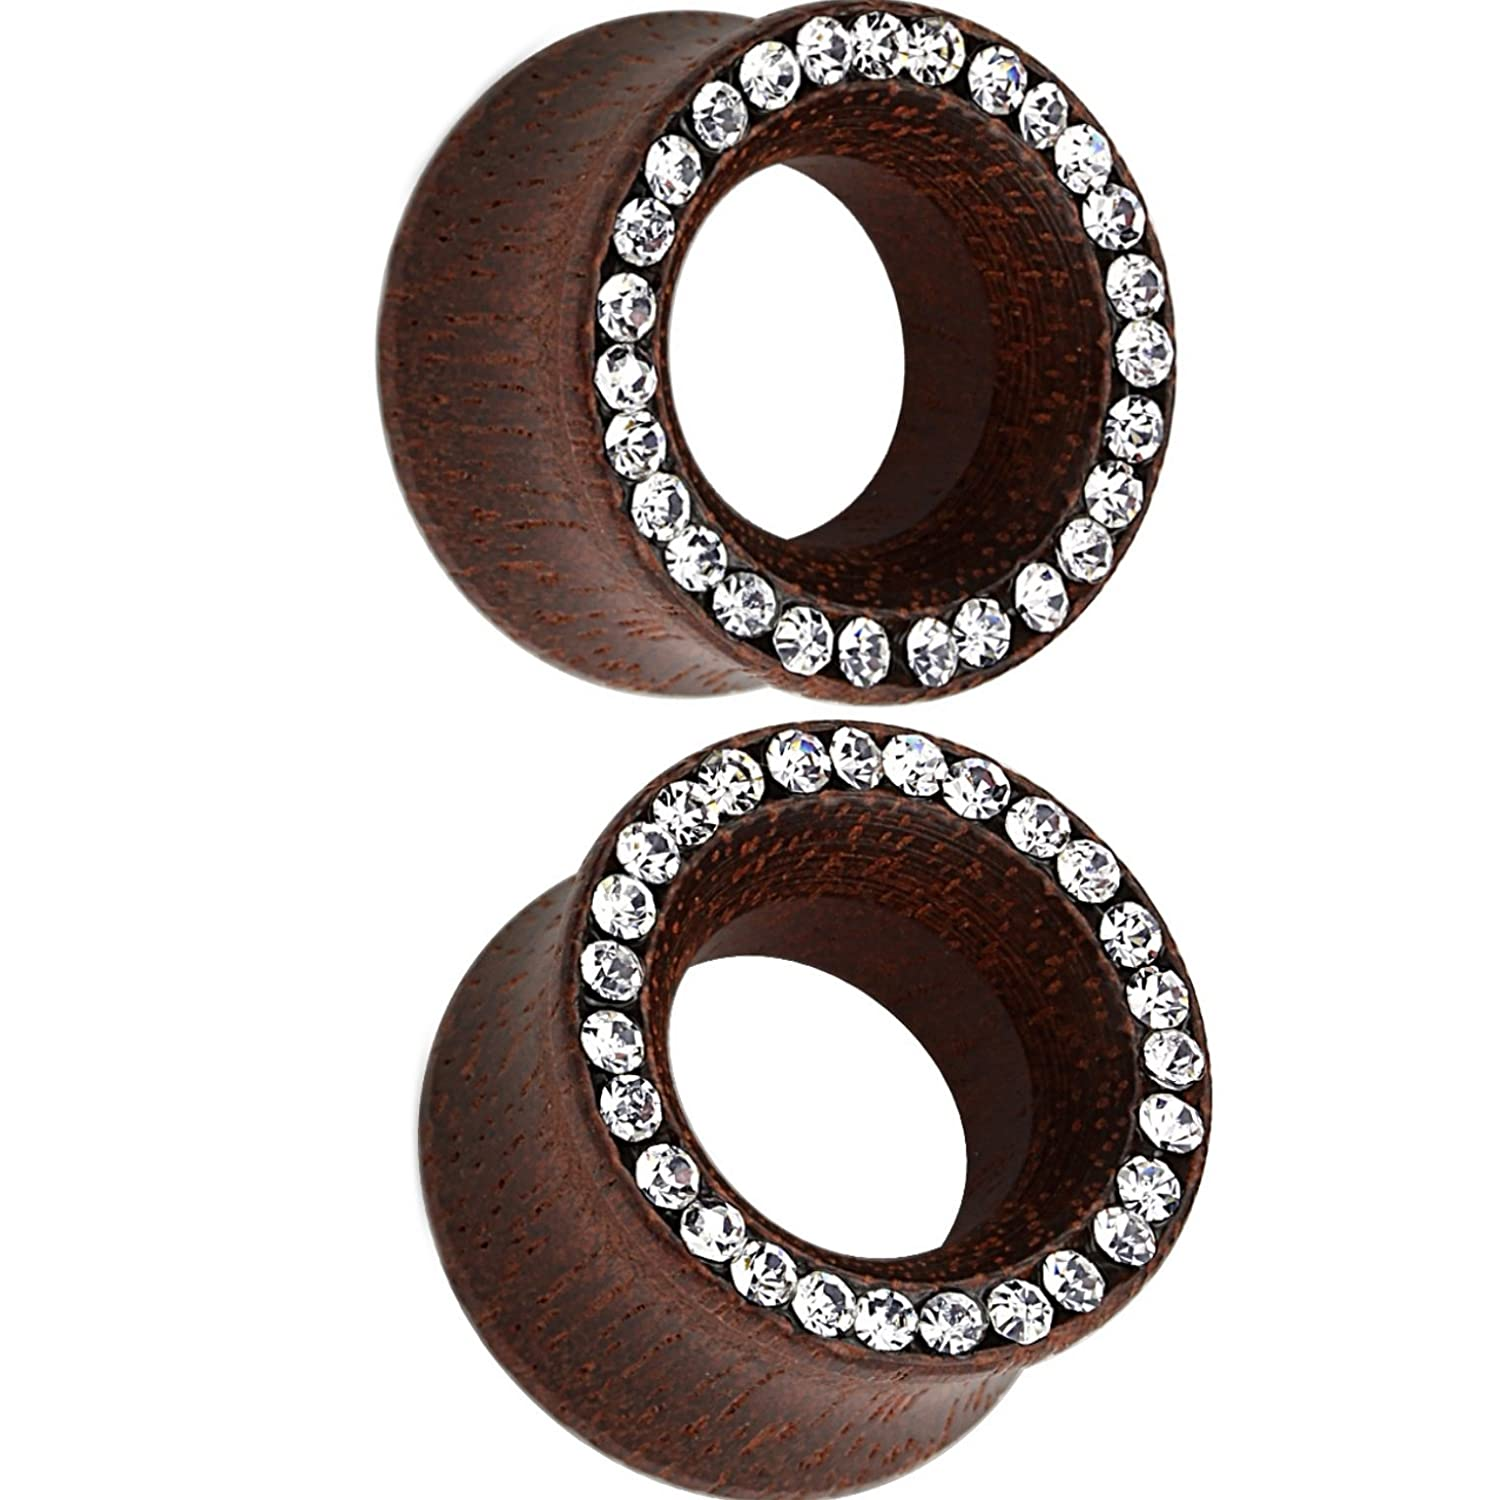 Pair of Organic Rose Wood Ear Plugs Tunnels w/Paved Clear Crystal Accent Rim NA Does Not Apply